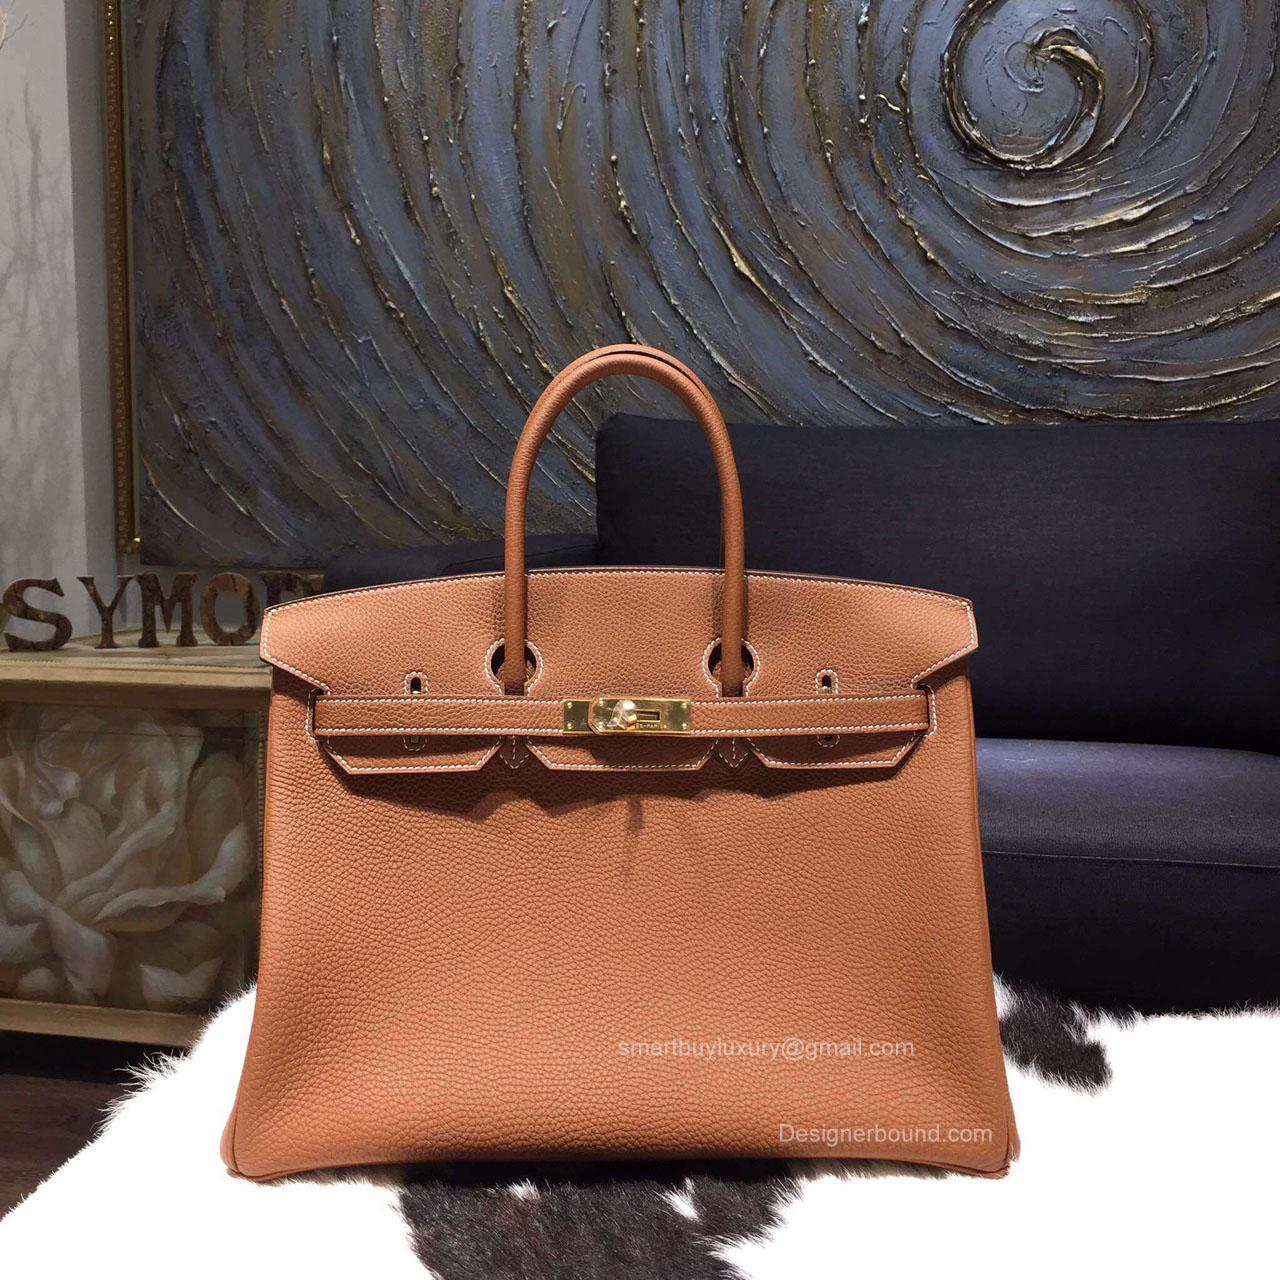 Hermes Birkin 35 cm Togo Bag Gold Handstitched Gold Hw